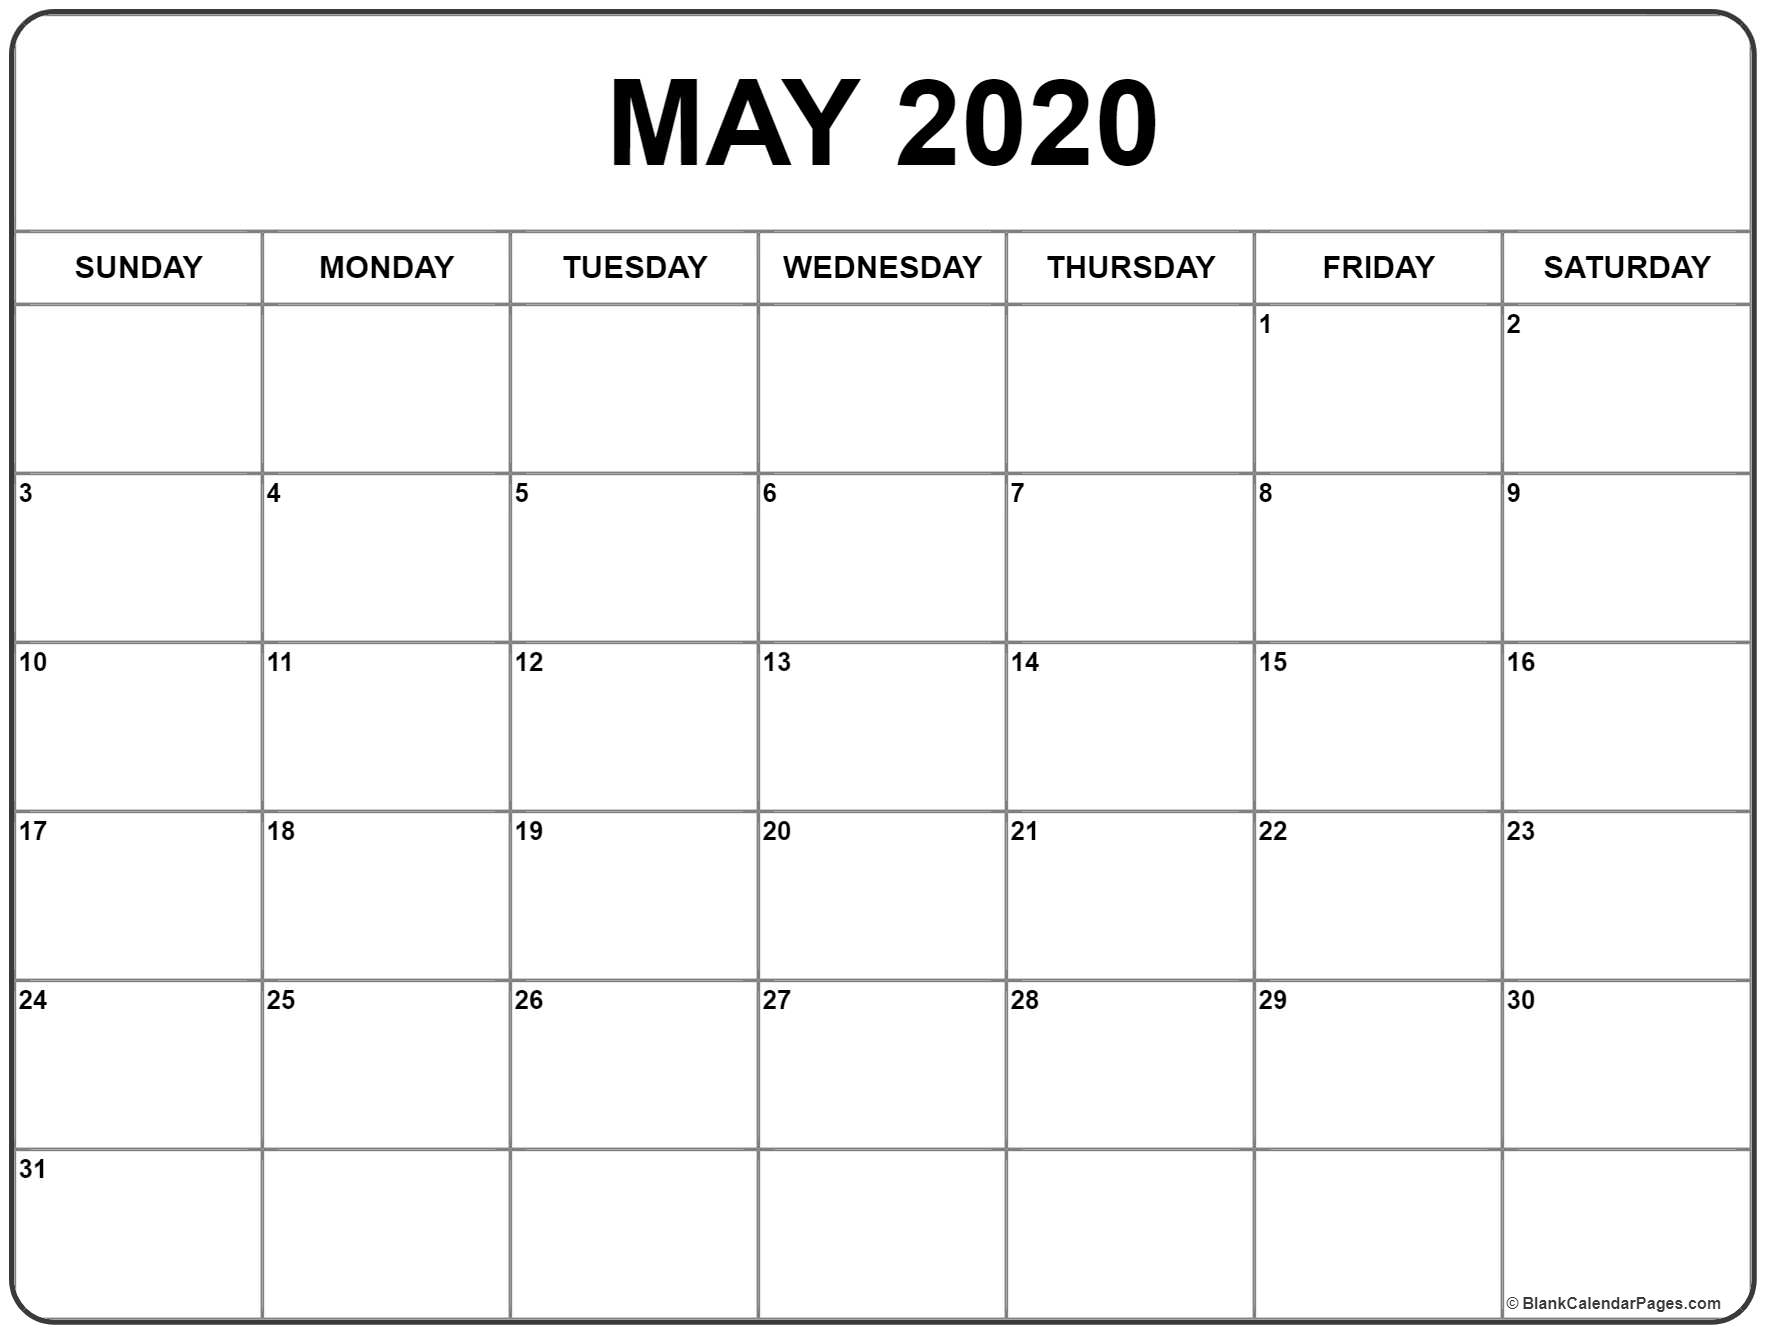 May 2020 Calendar | Free Printable Monthly Calendars regarding Free Printable 2020 Calendar With Space To Write